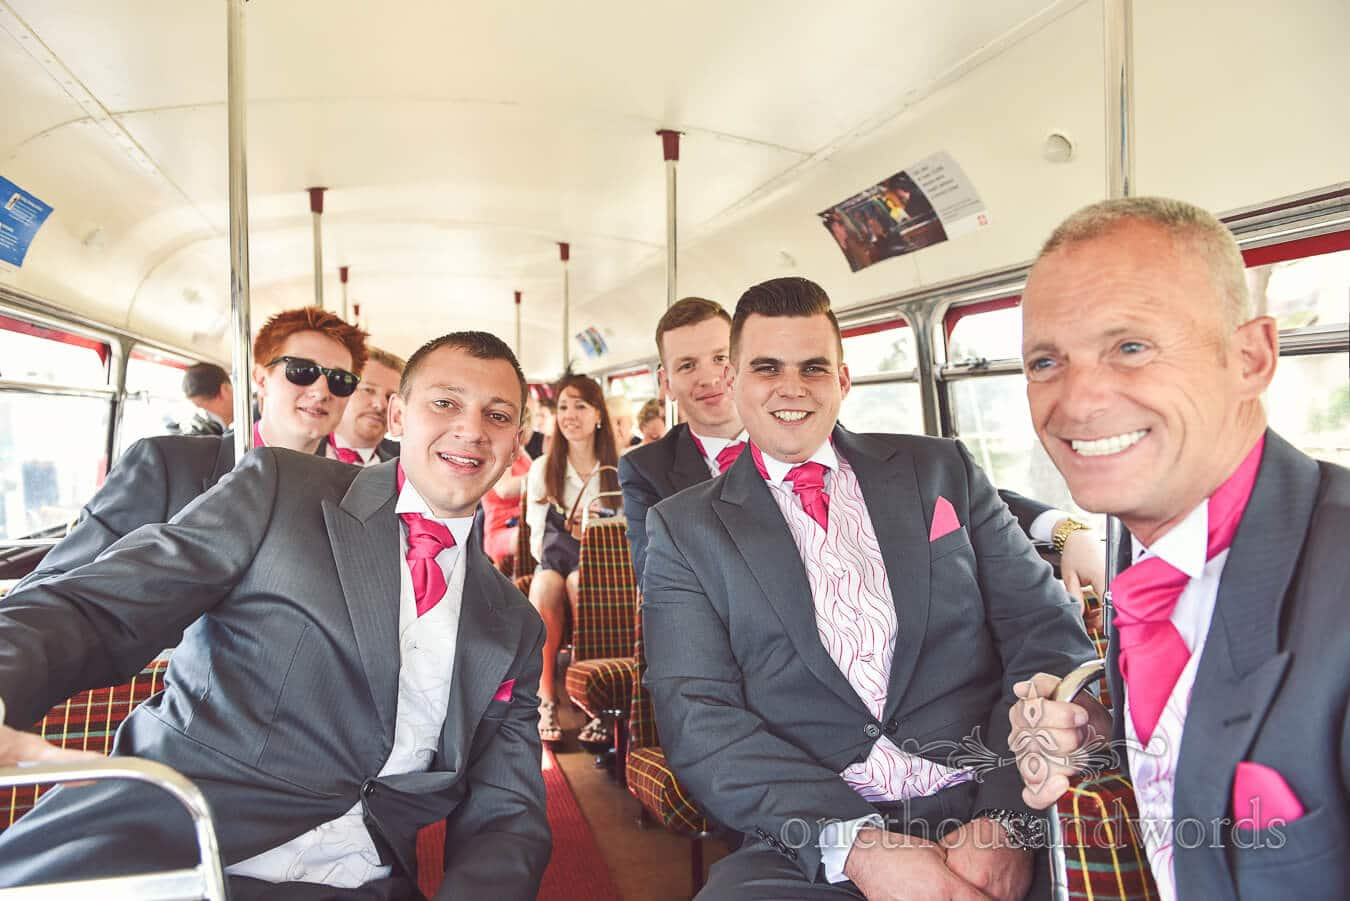 Groom and groomsmen on the bus from Haven hotel wedding